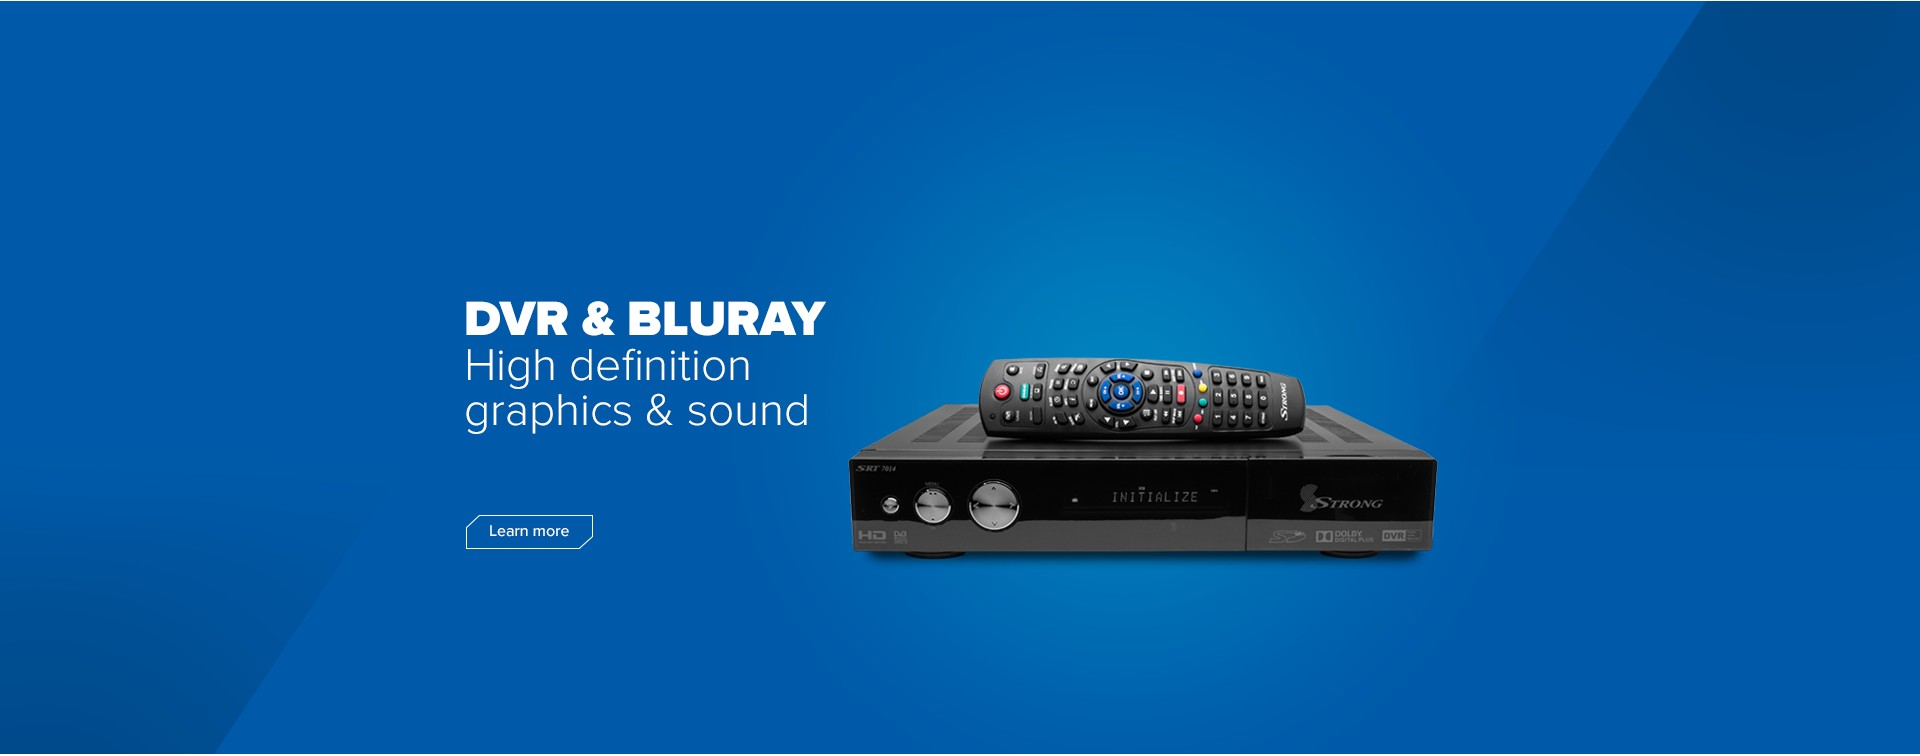 DVR & BluRay